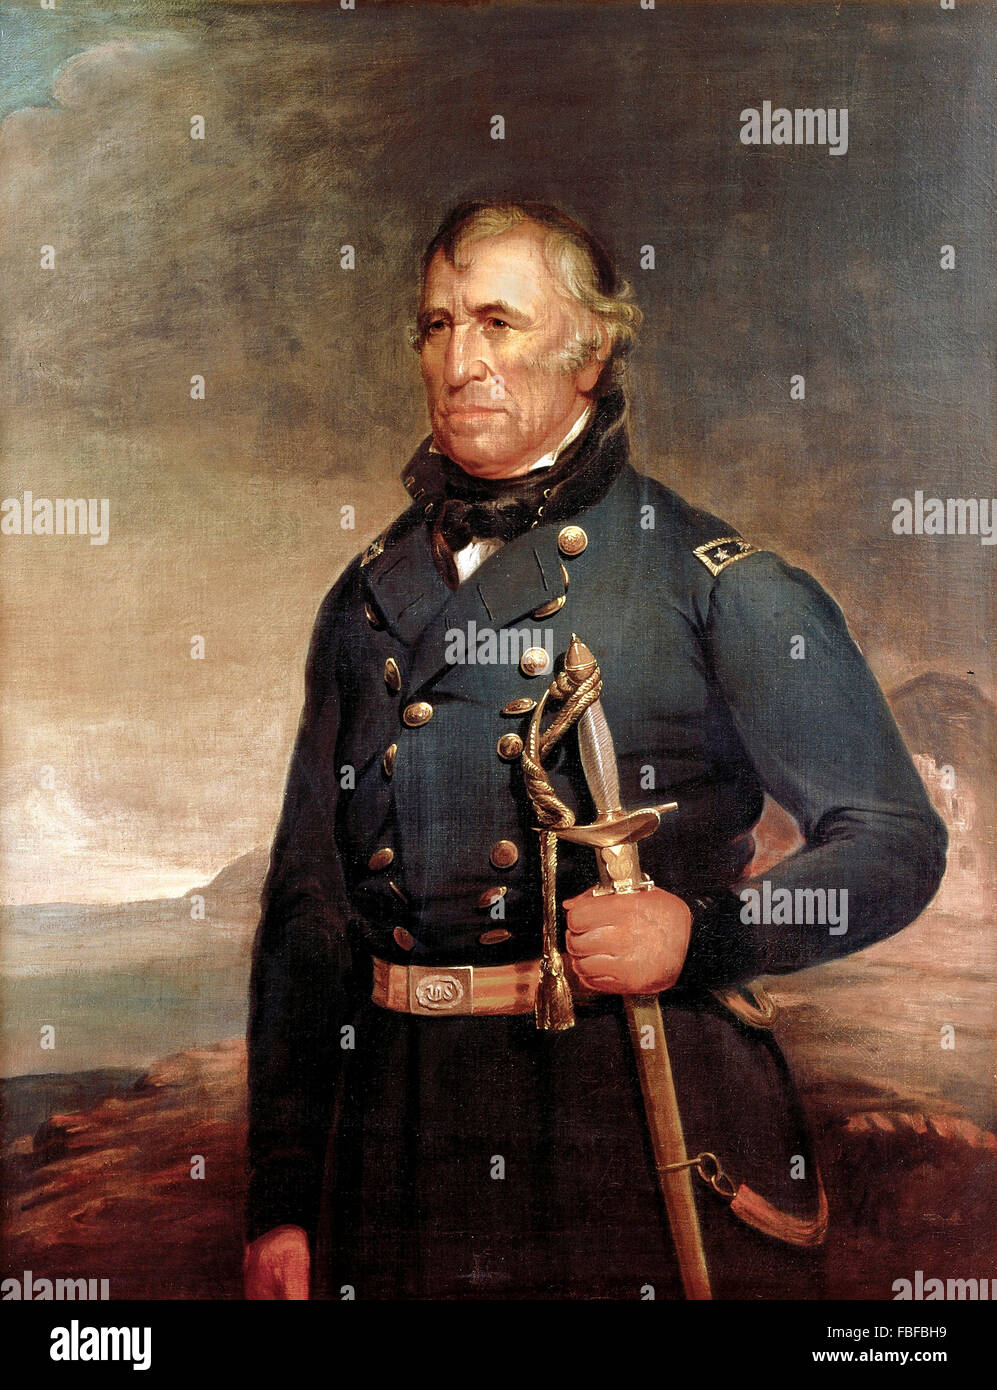 Zachary Taylor, portrait of the 12th US President  by Joseph Henry Bush, 1848 - Stock Image